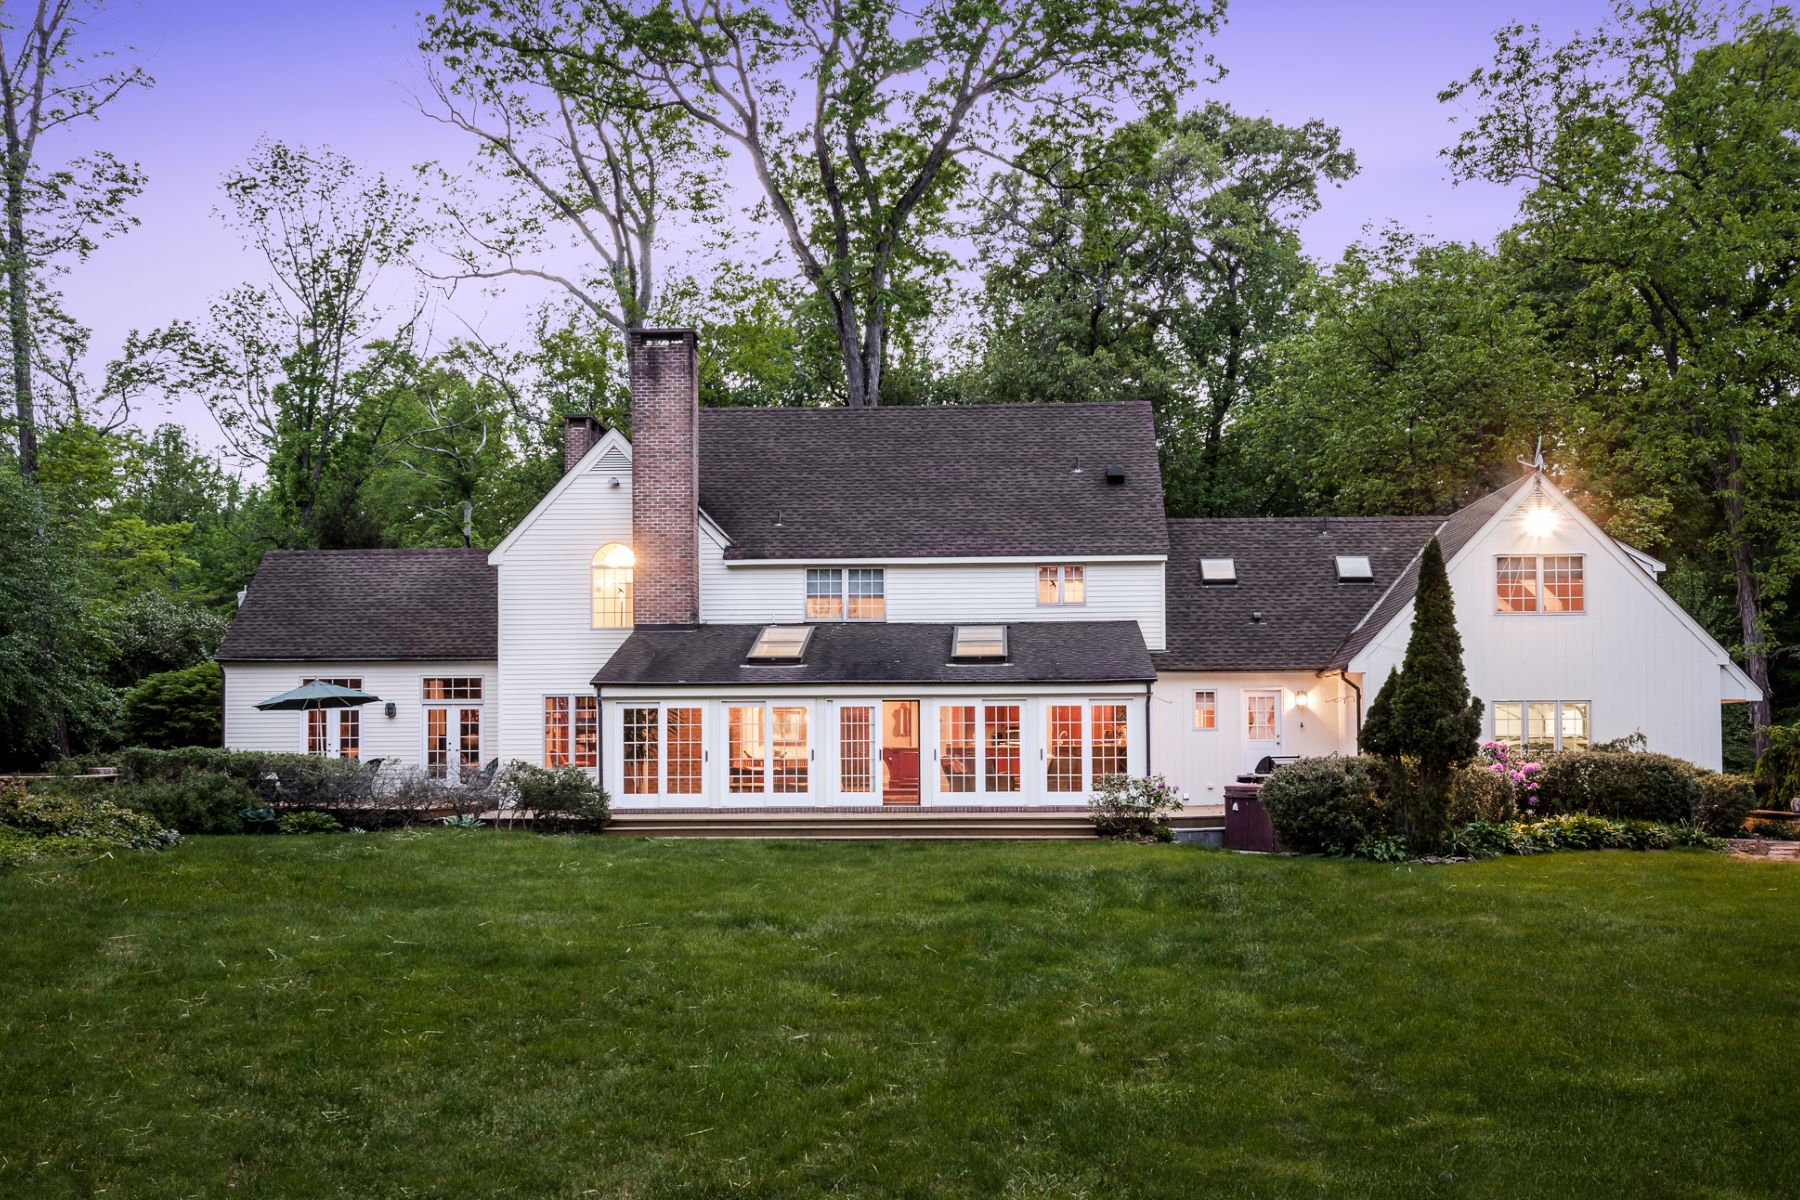 Single Family Home for Sale at A Majestic Setting for Distinctive Lawrence Estate - Lawrence Township 4497 Province Line Road, Princeton, New Jersey, 08540 United StatesIn/Around: Lawrence Township